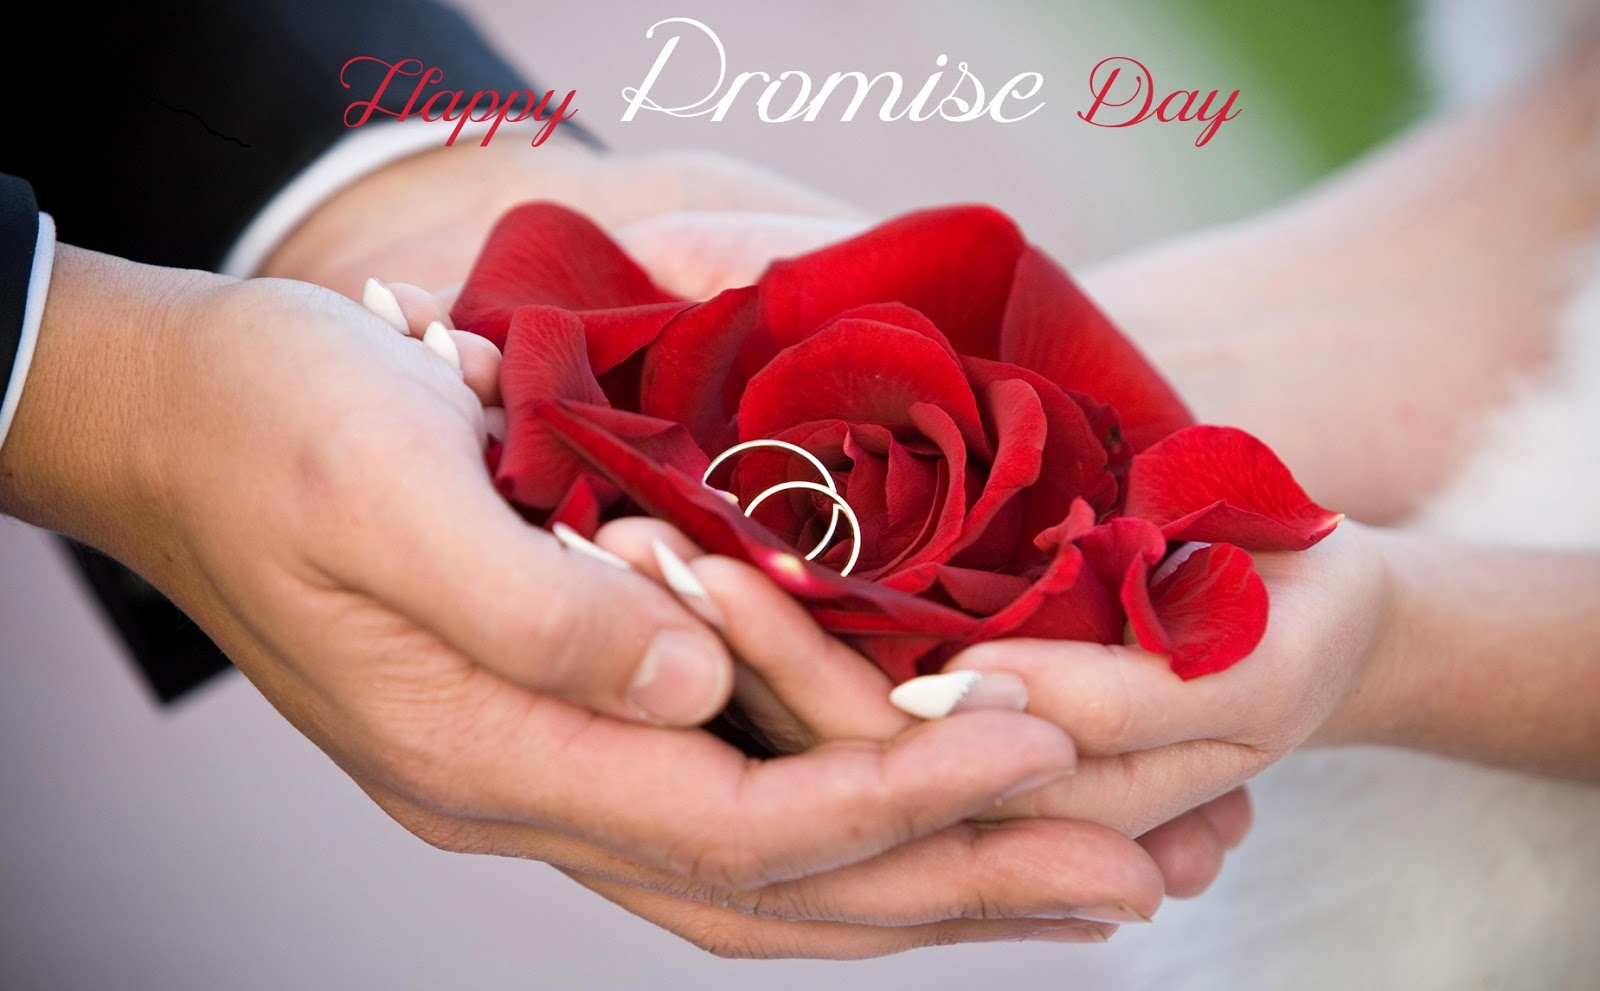 Wallpaper download for whatsapp - Download Promise Day Images For Whatsapp Dp Profile